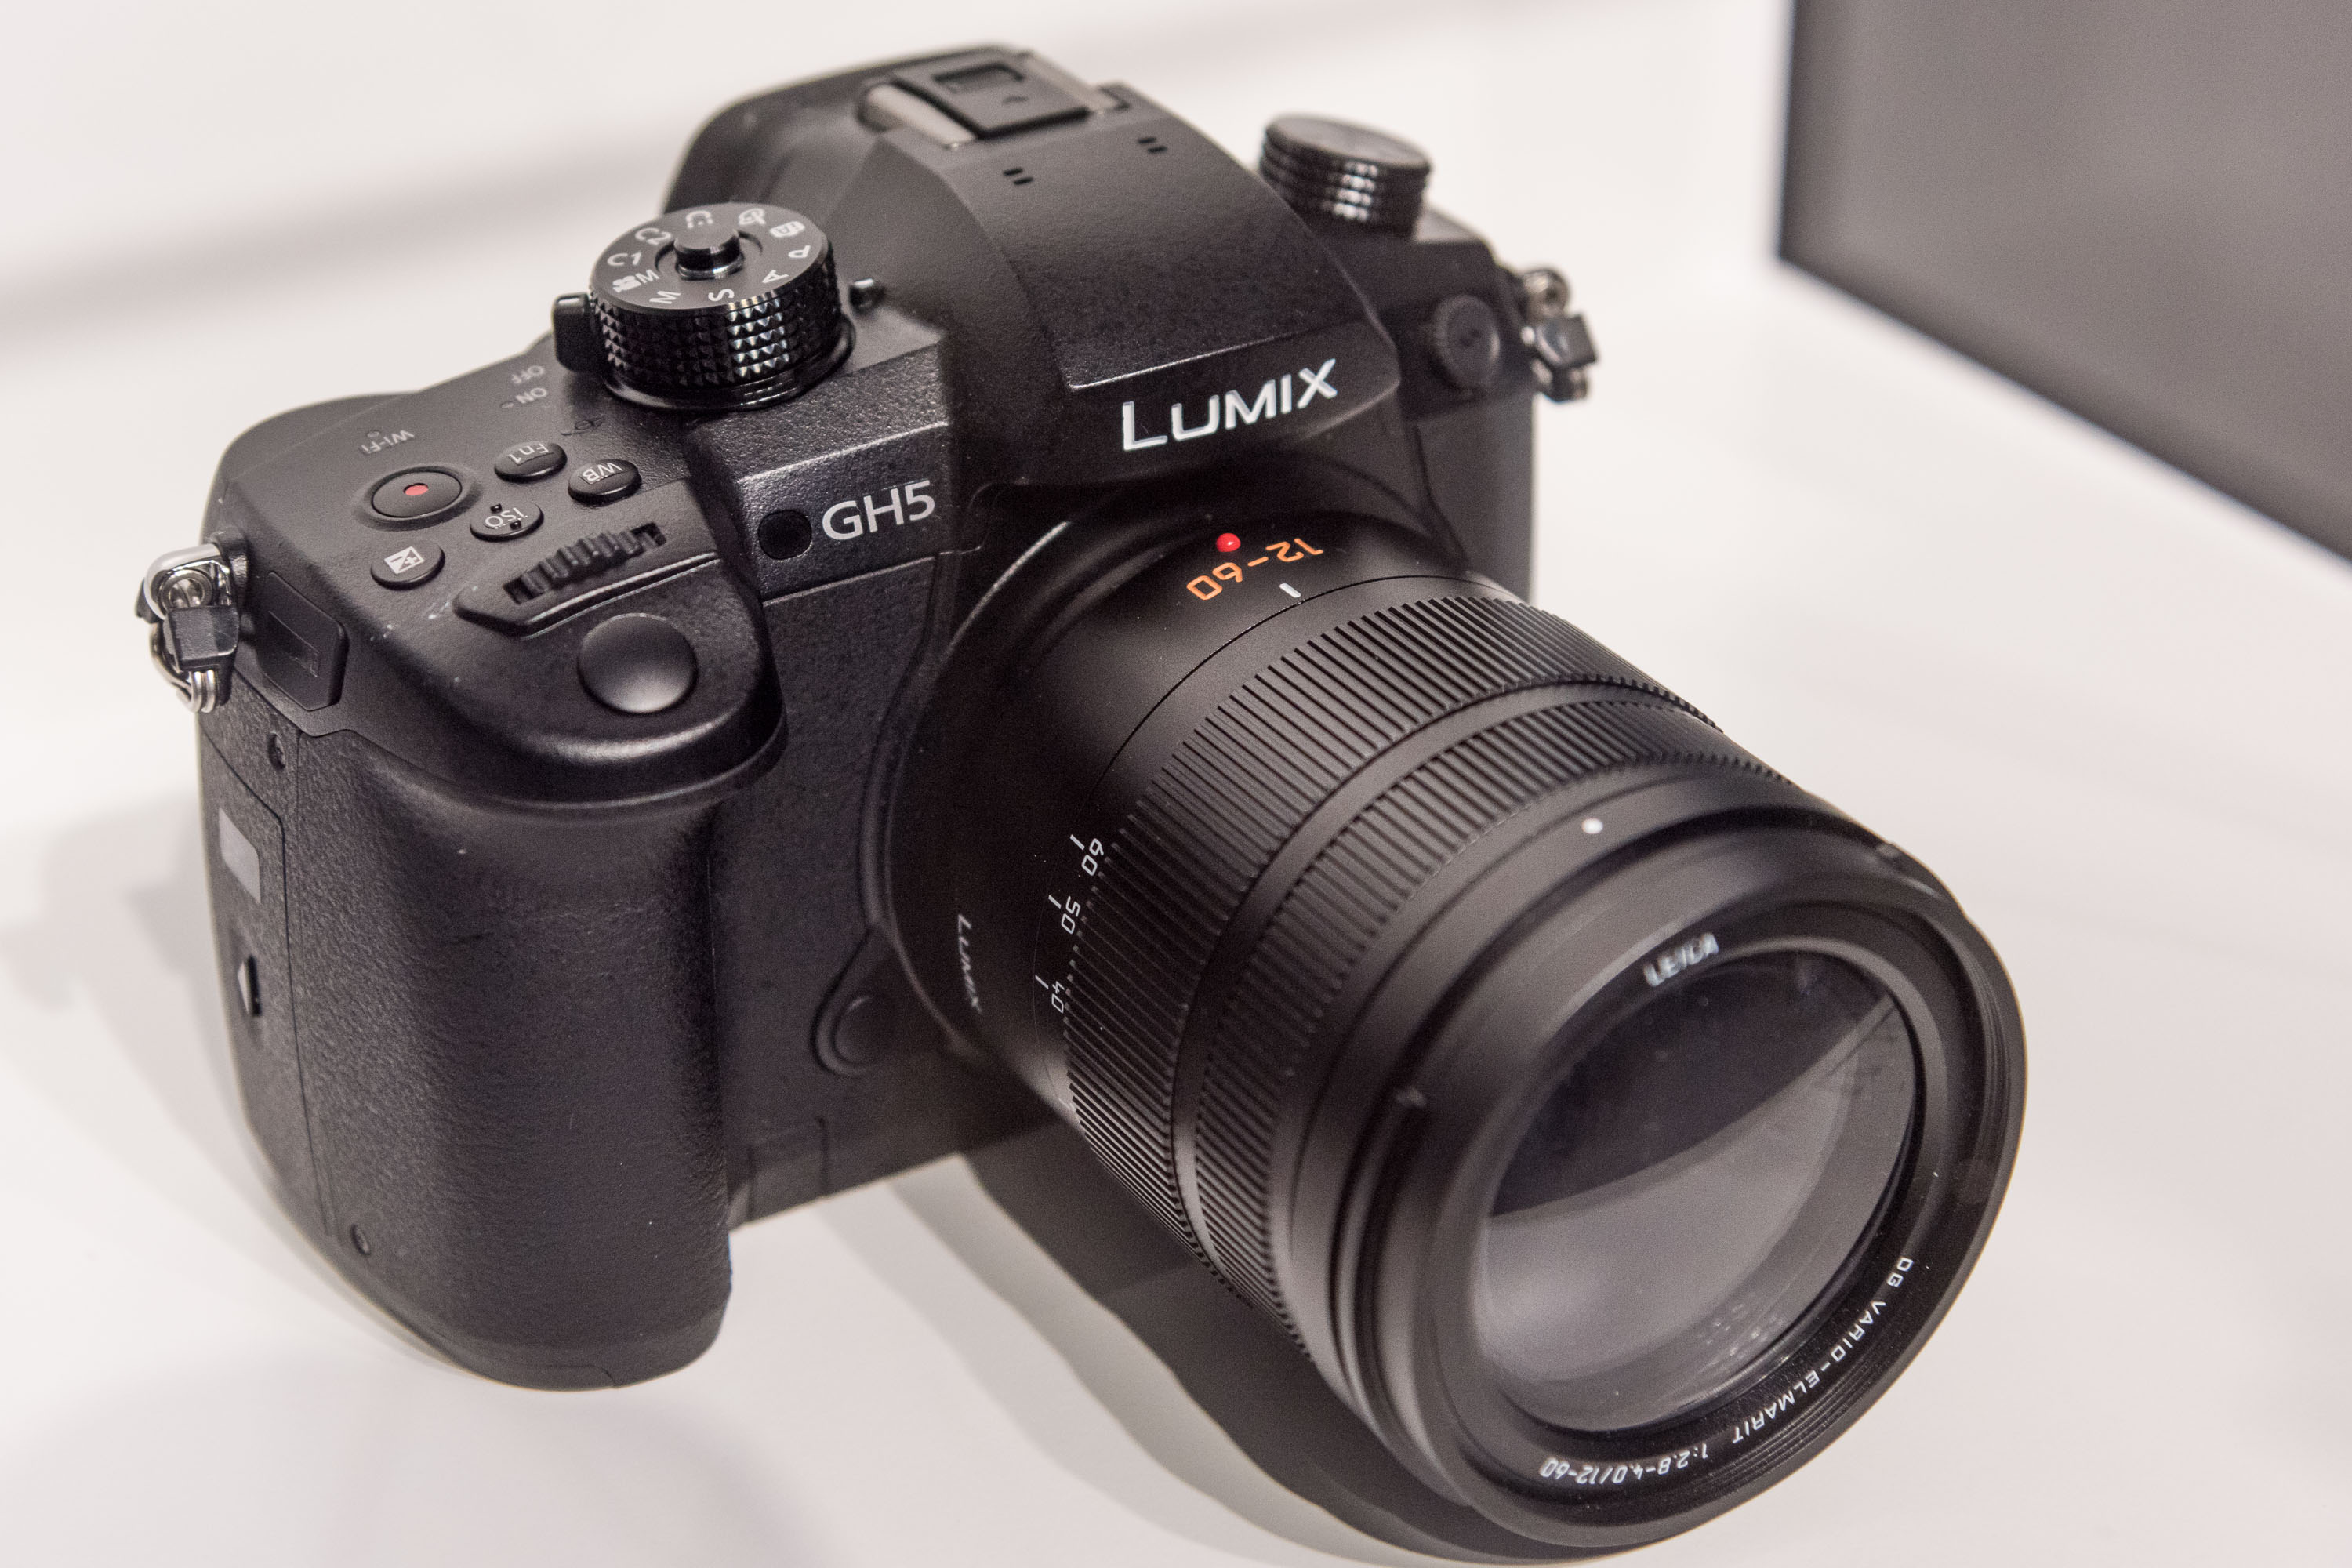 6K here we come: Here's the new Panasonic Lumix DMC-GH5: Digital  Photography Review